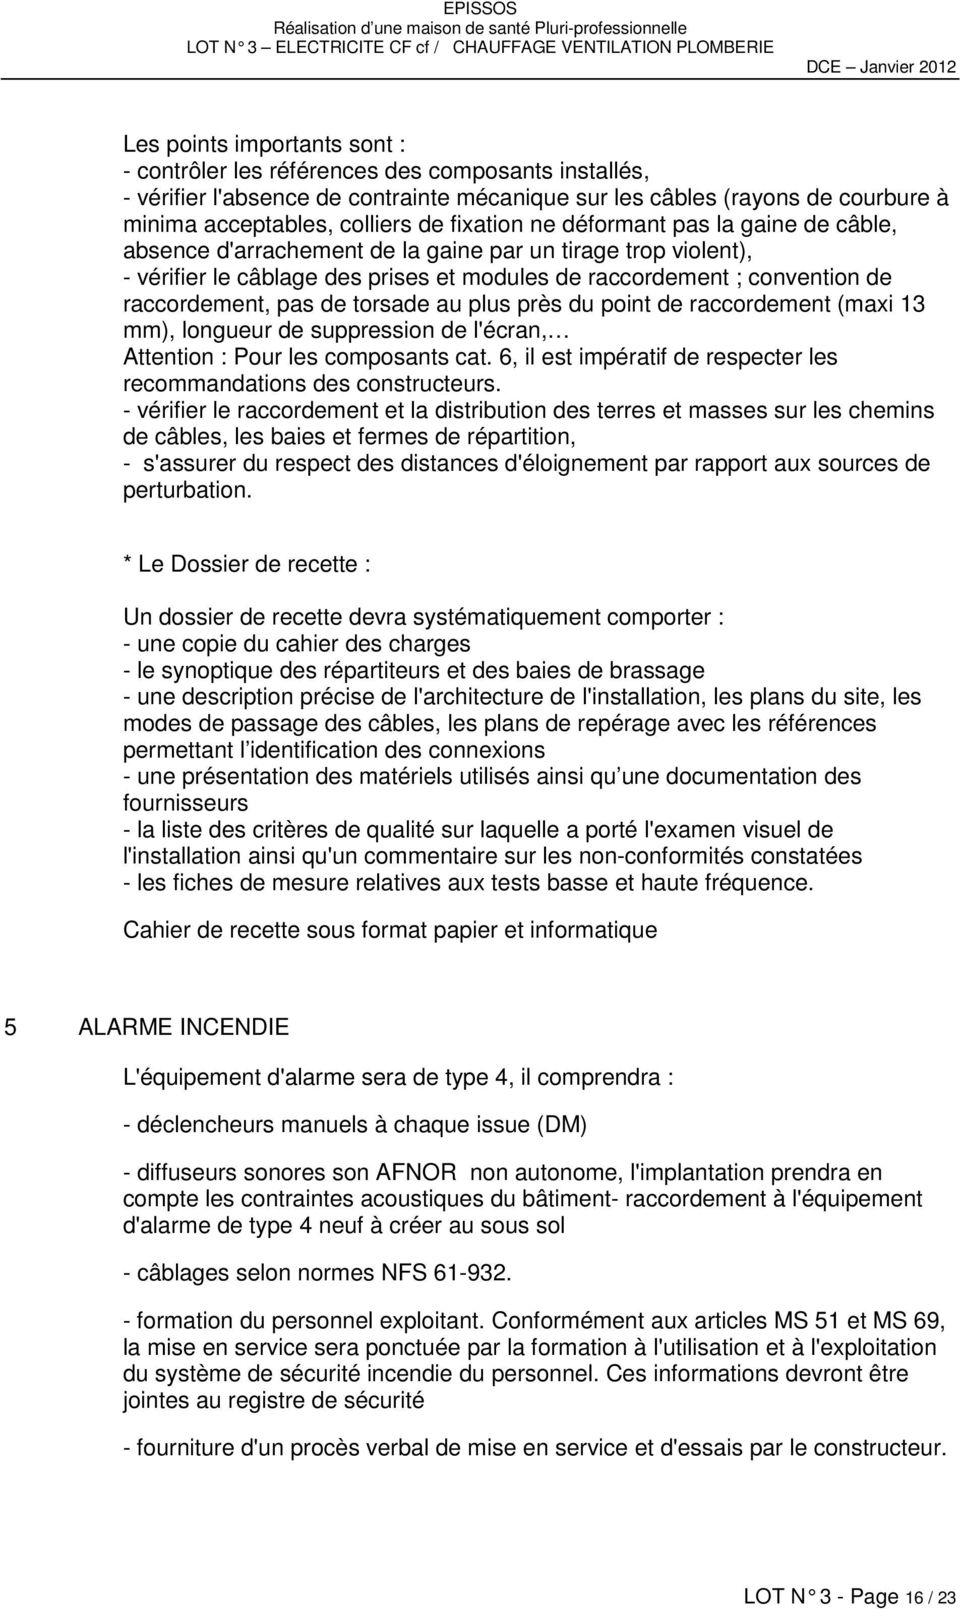 pas de torsade au plus près du point de raccordement (maxi 13 mm), longueur de suppression de l'écran, Attention : Pour les composants cat.